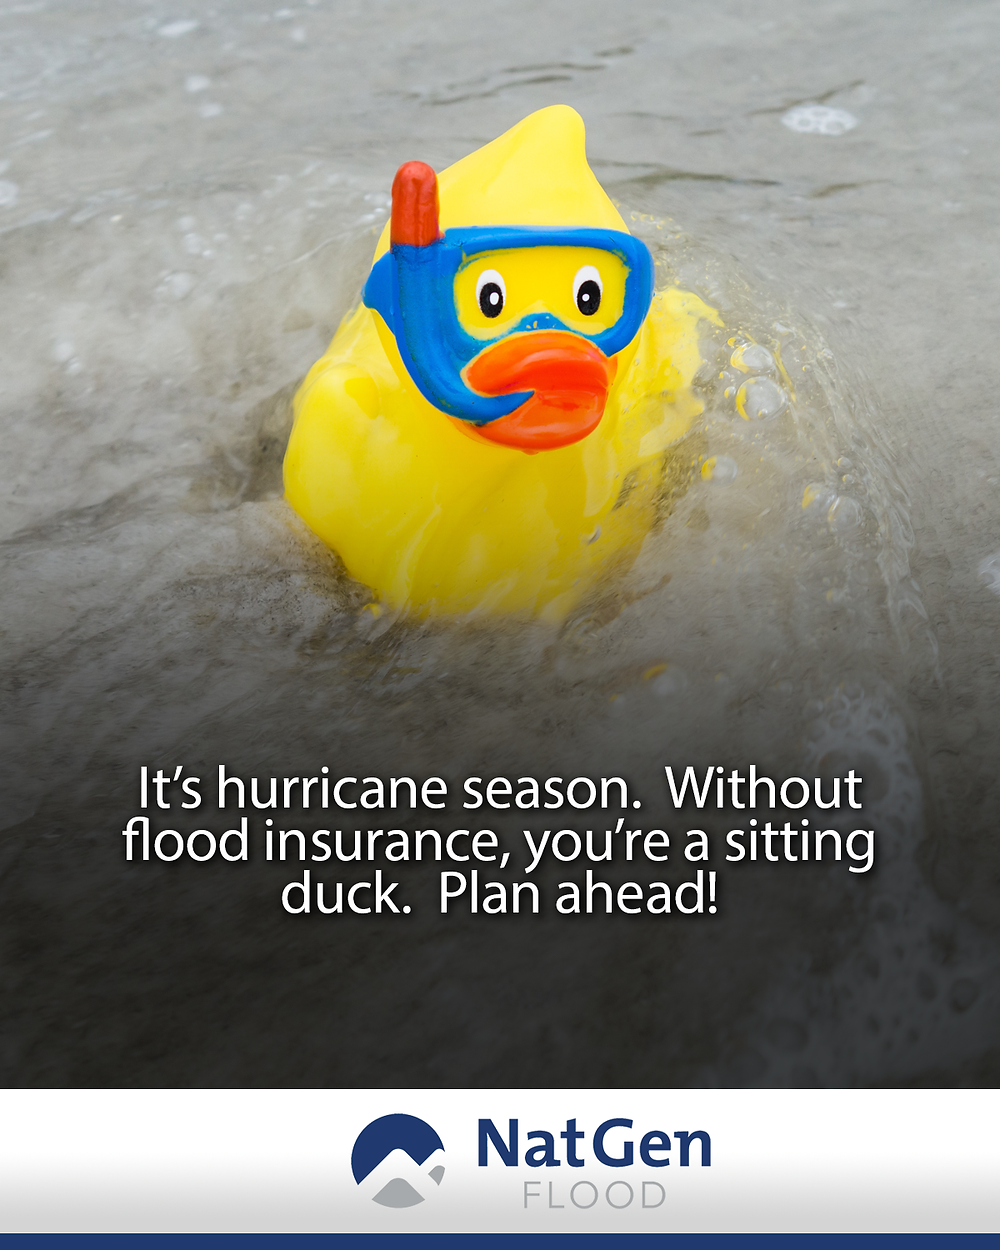 It's hurricane season. Without flood insurance, you're a sitting duck.